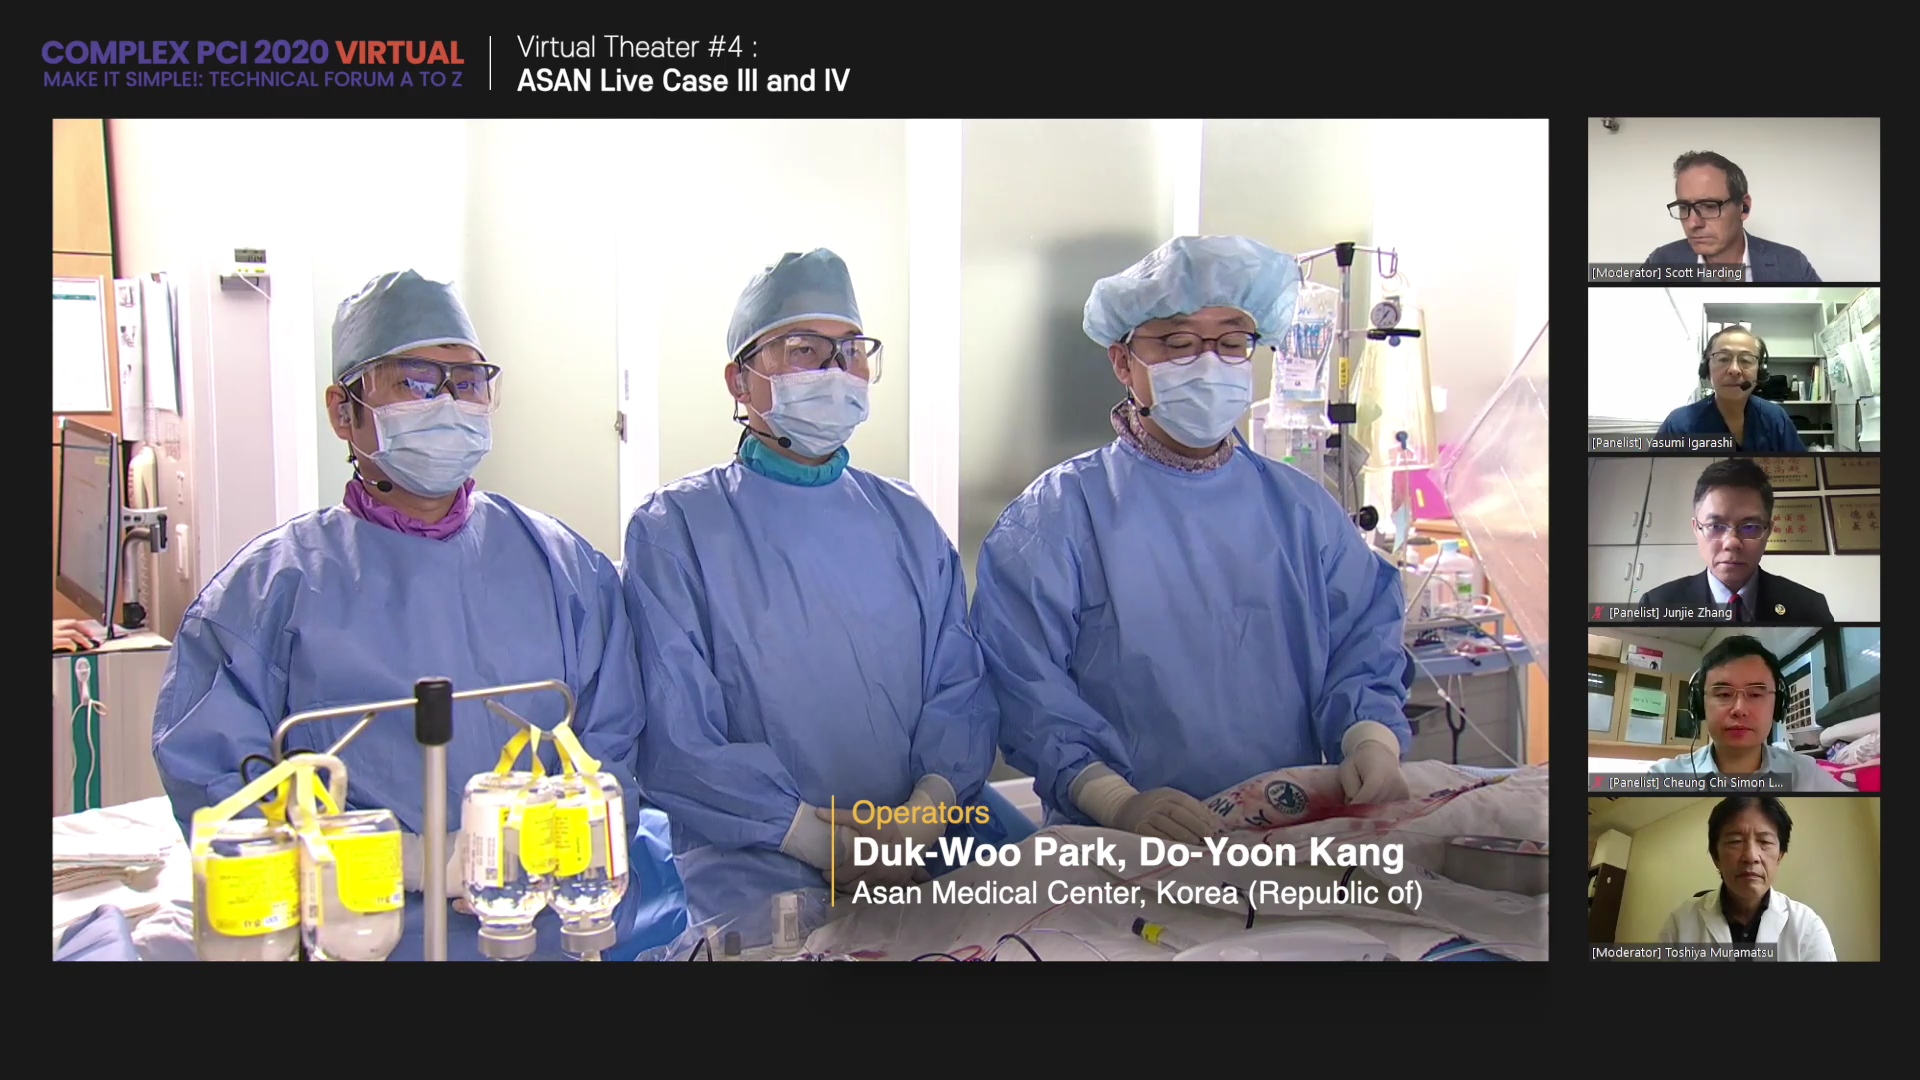 Virtual Theater #4: ASAN Live Case III and IV